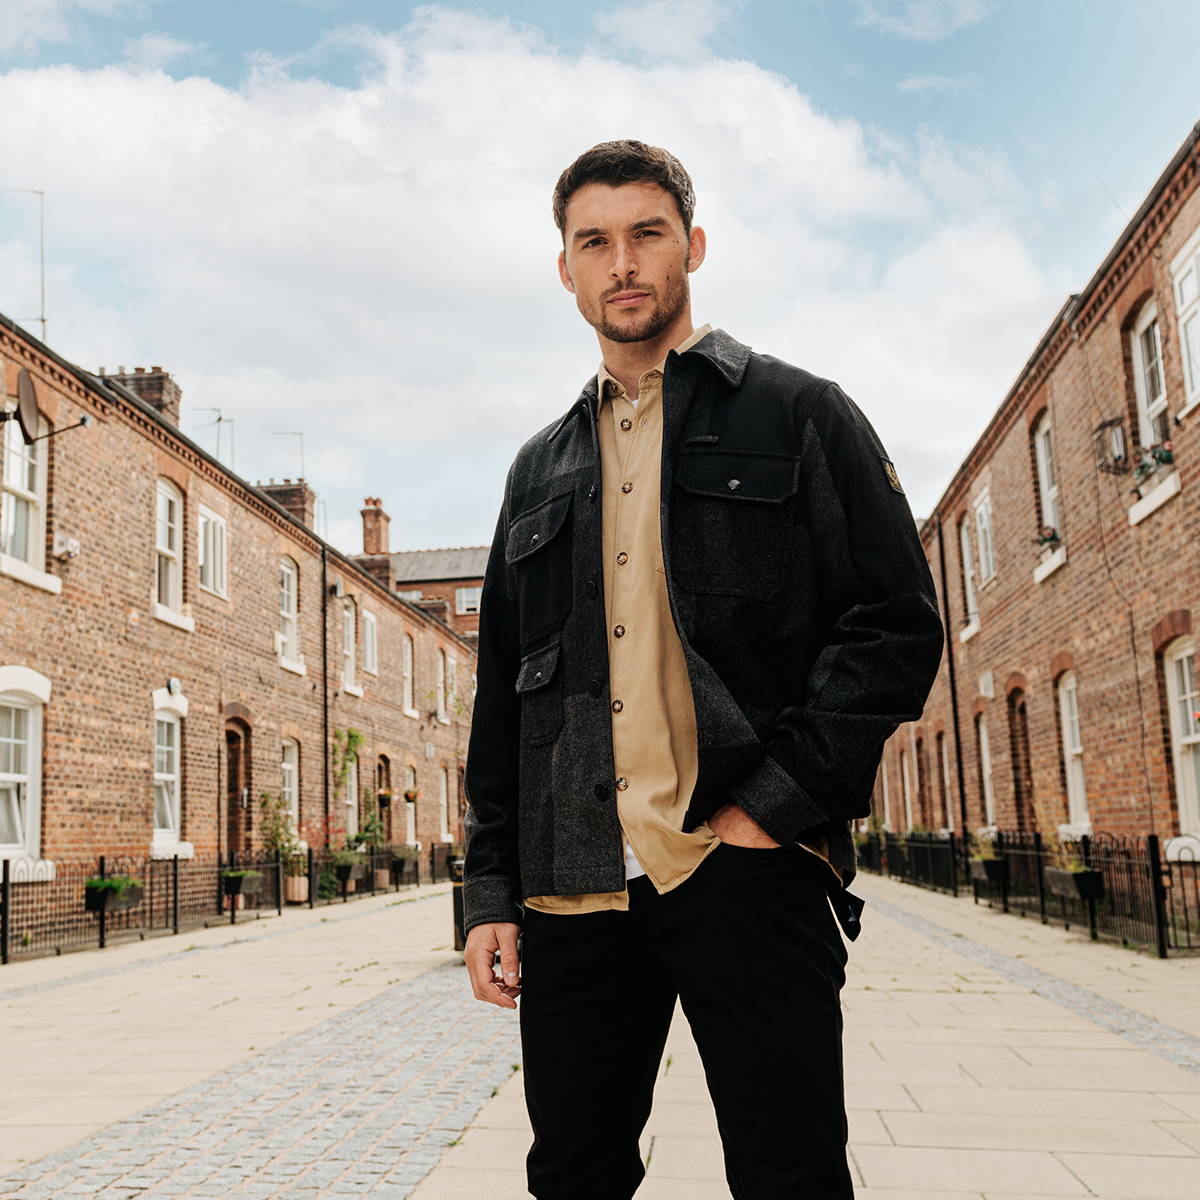 A man standing in a residential street wearing a Belstaff jacket and jeans